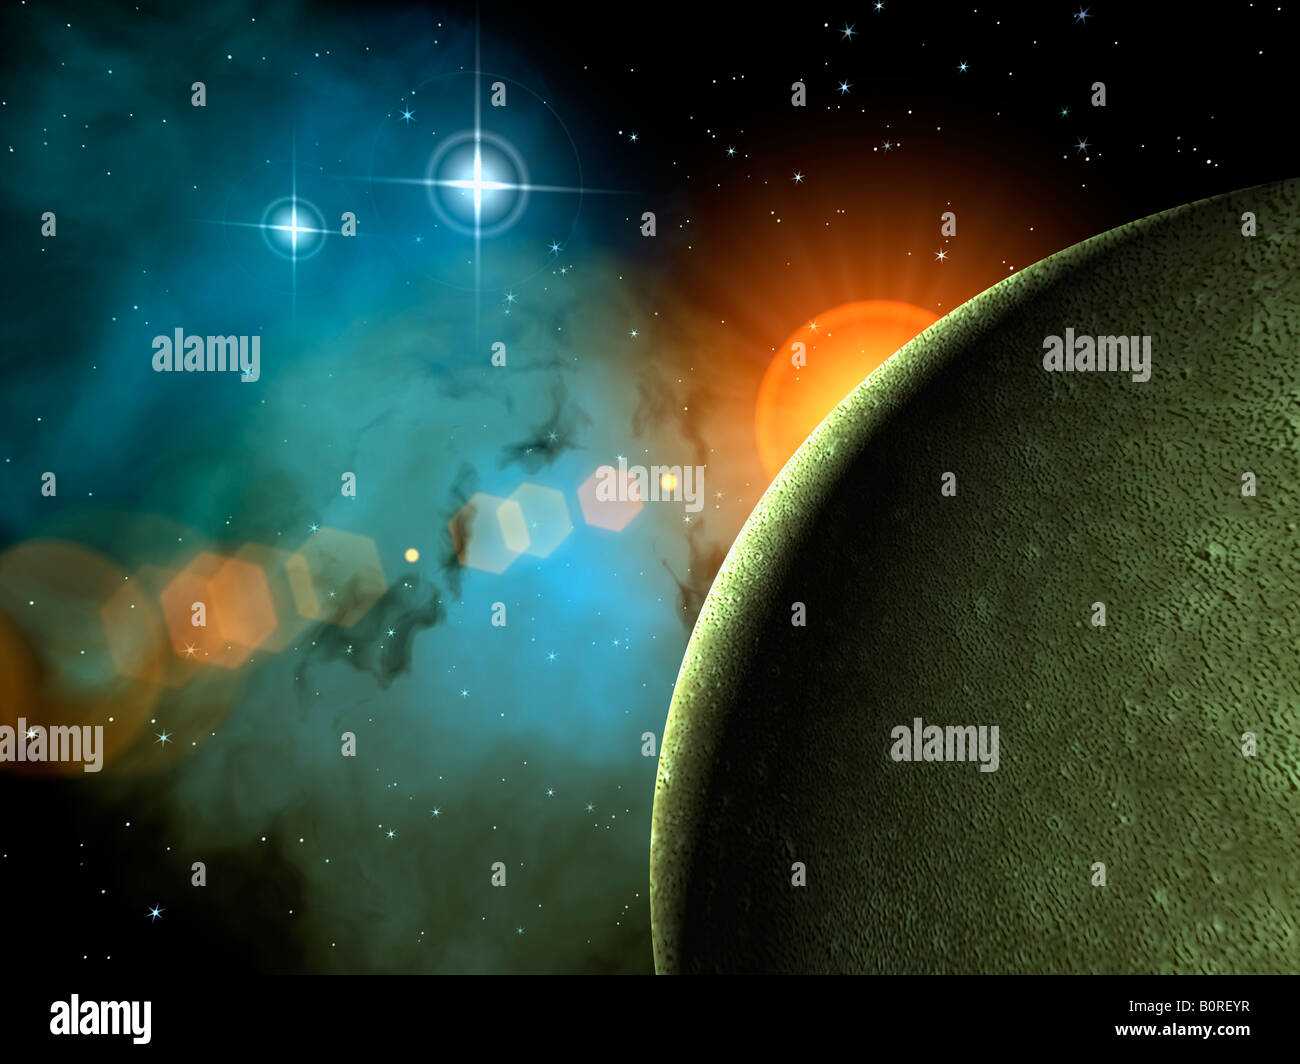 Outer space scene with exoplanet stars and nebulae stock for Outer space scene